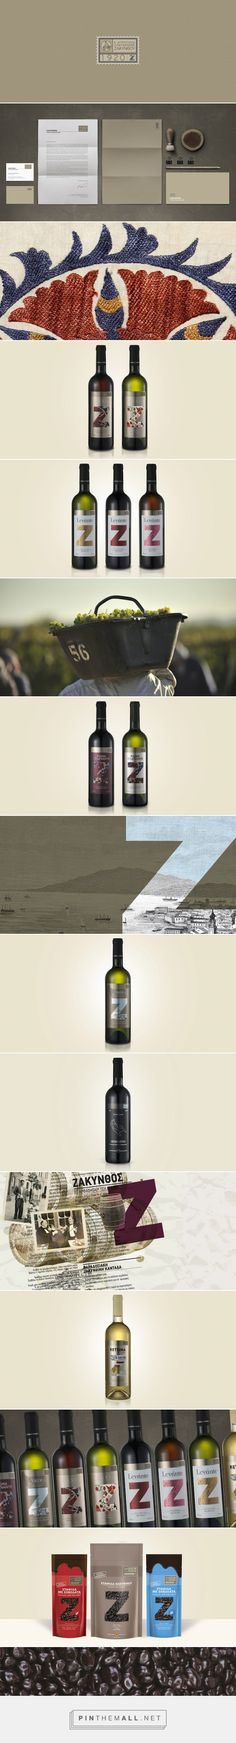 Agricultural Cooperatives Of Zakynthos #wine #packaging designed by Antonia Skaraki​ - http://www.packagingoftheworld.com/2015/07/utd-agricultural-cooperatives-of.html